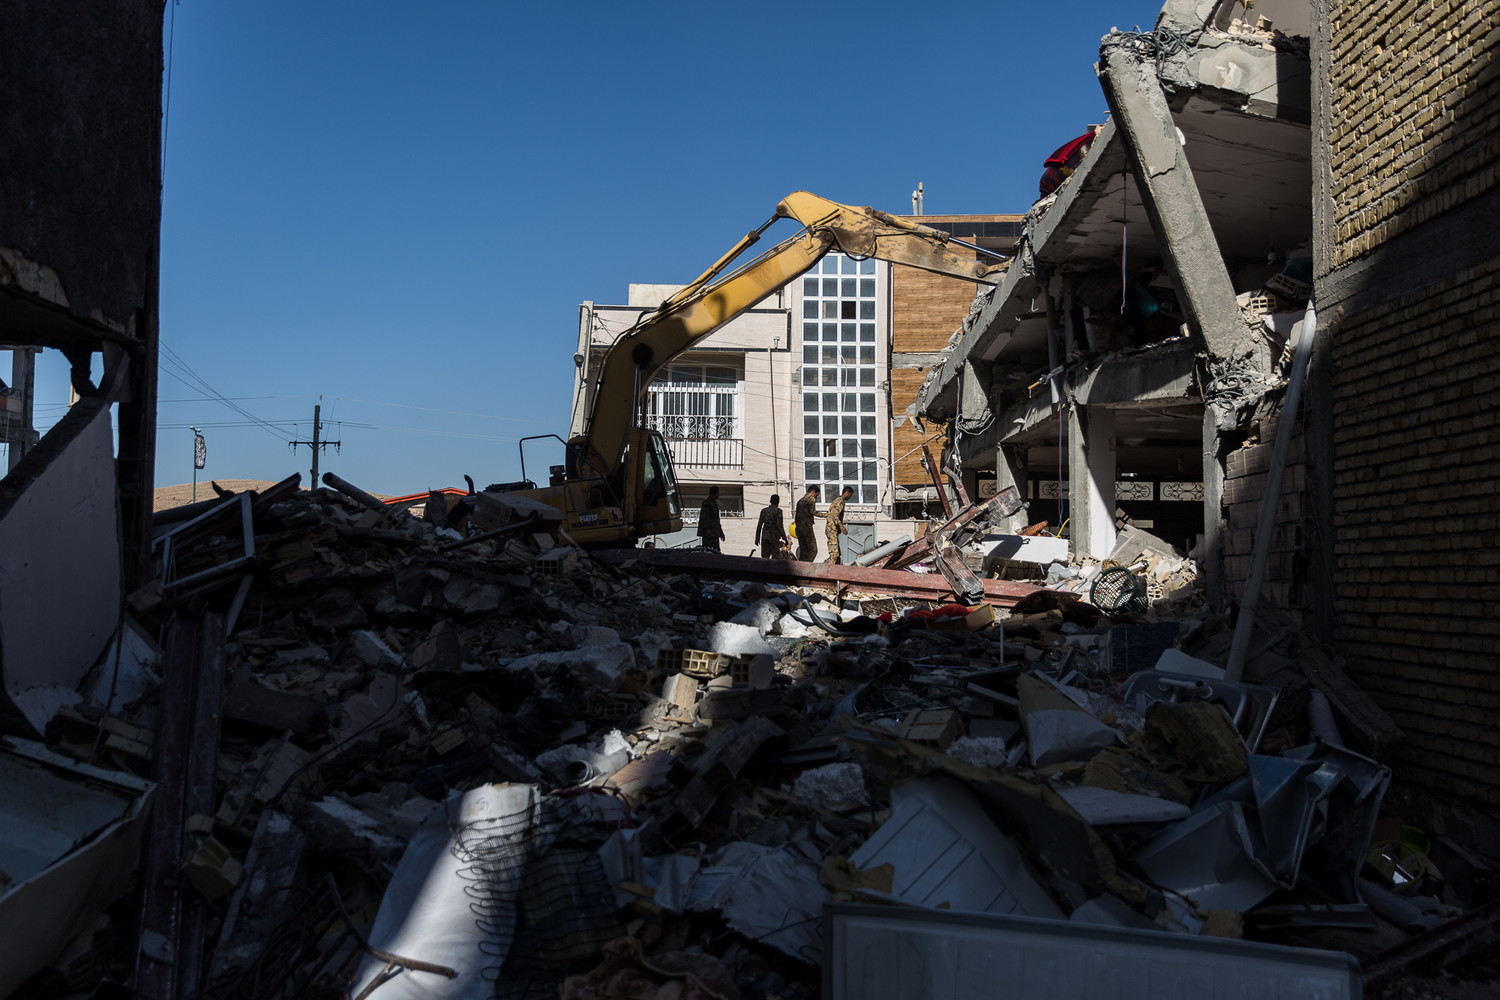 Sarpol-E Zahab-IRAN: A powerful 7.3-magnitude earthquake hit western Iran's Kermanshah province on Sunday night, killing at least 500 people and injuring 8000 so far.